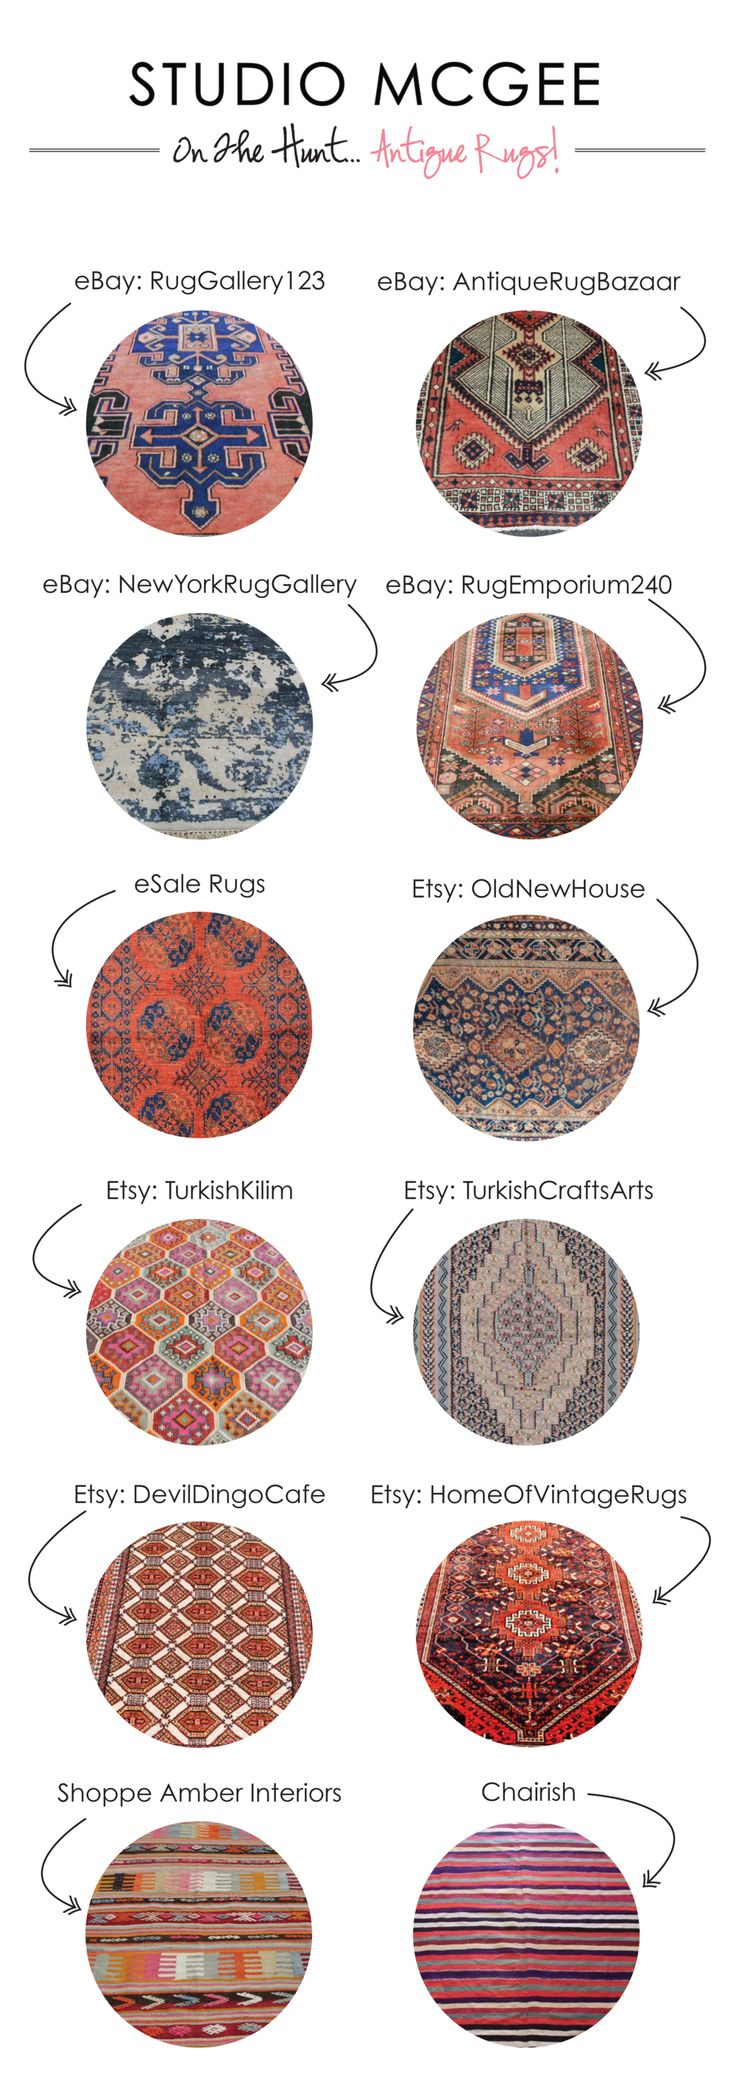 antique rugs - online sources — STUDIO MCGEE